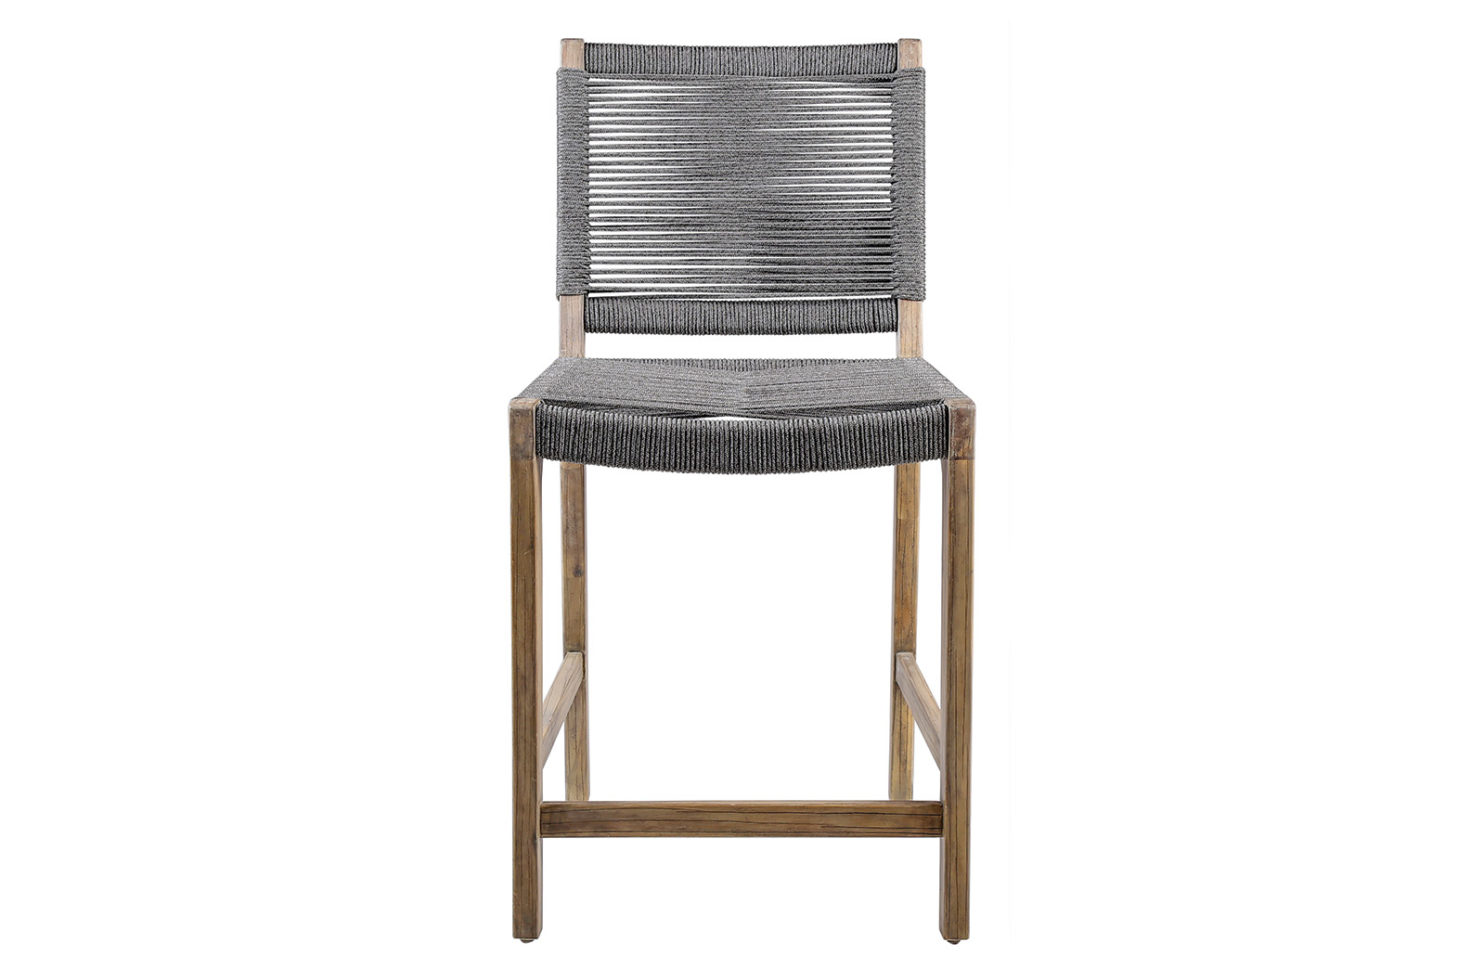 oceans counter chair 504FT411P2G E 1 front